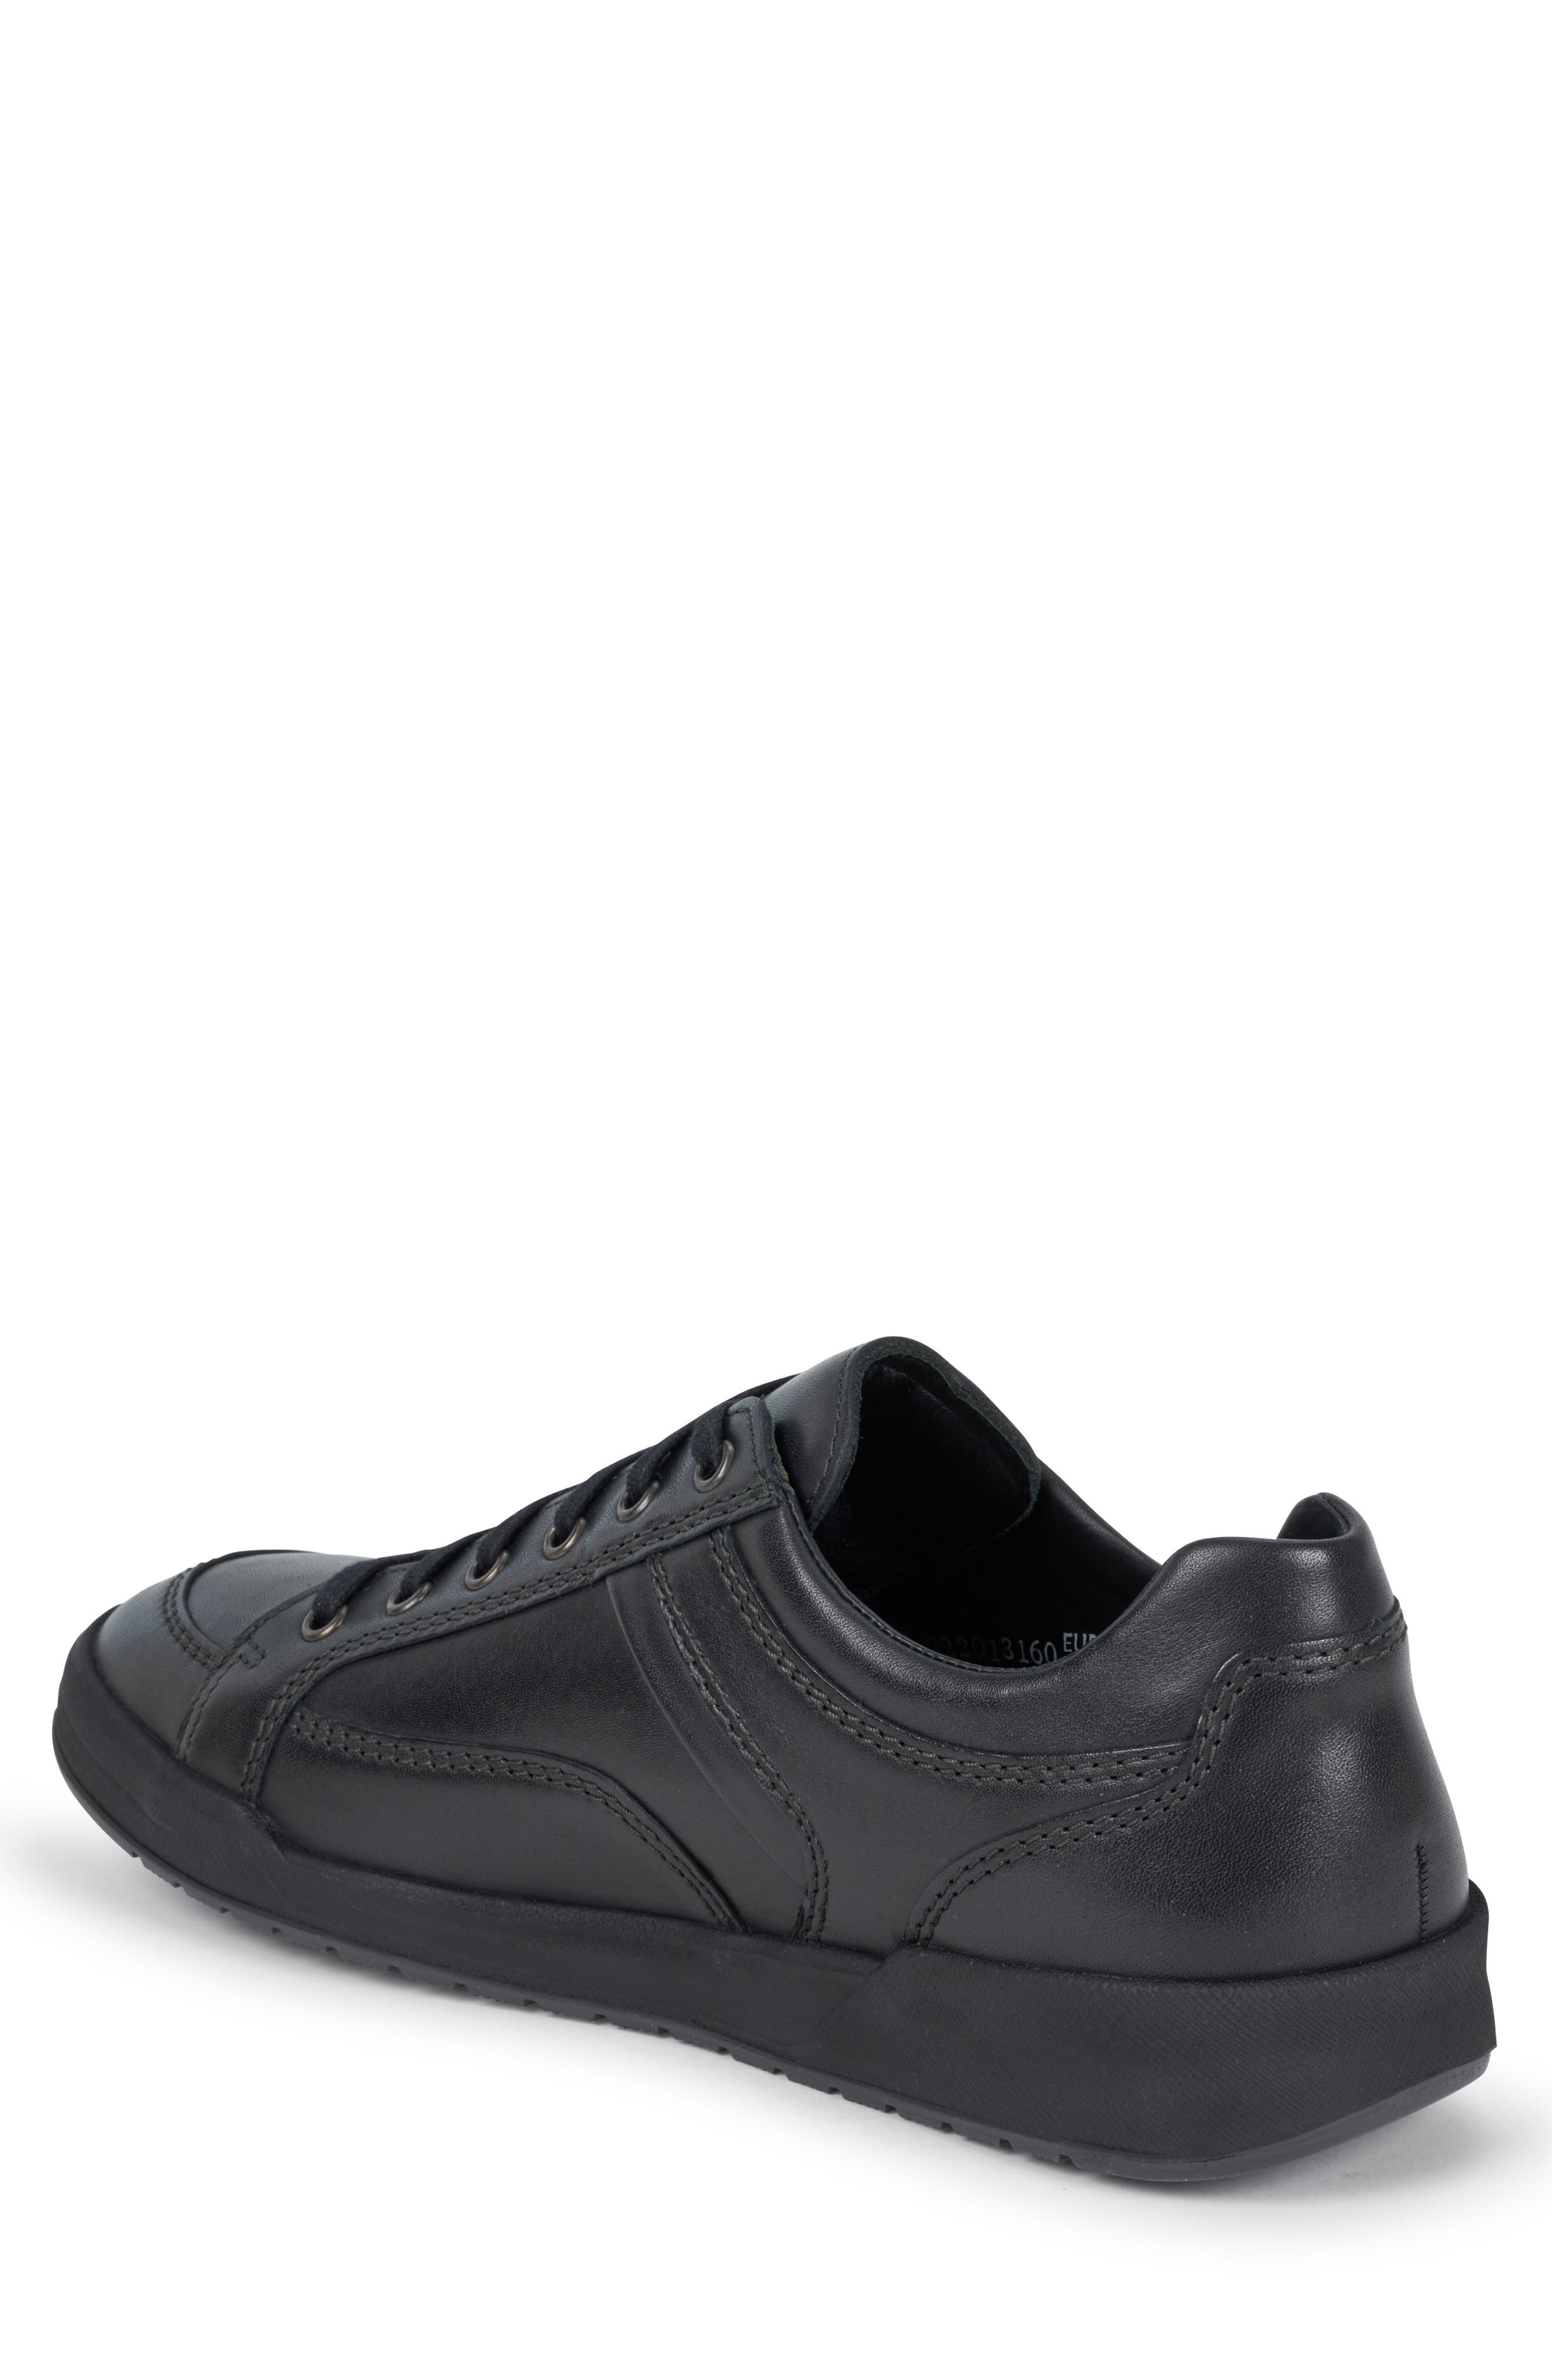 MEPHISTO, 'Rodrigo' Sneaker, Alternate thumbnail 2, color, BLACK/BLACK LEATHER